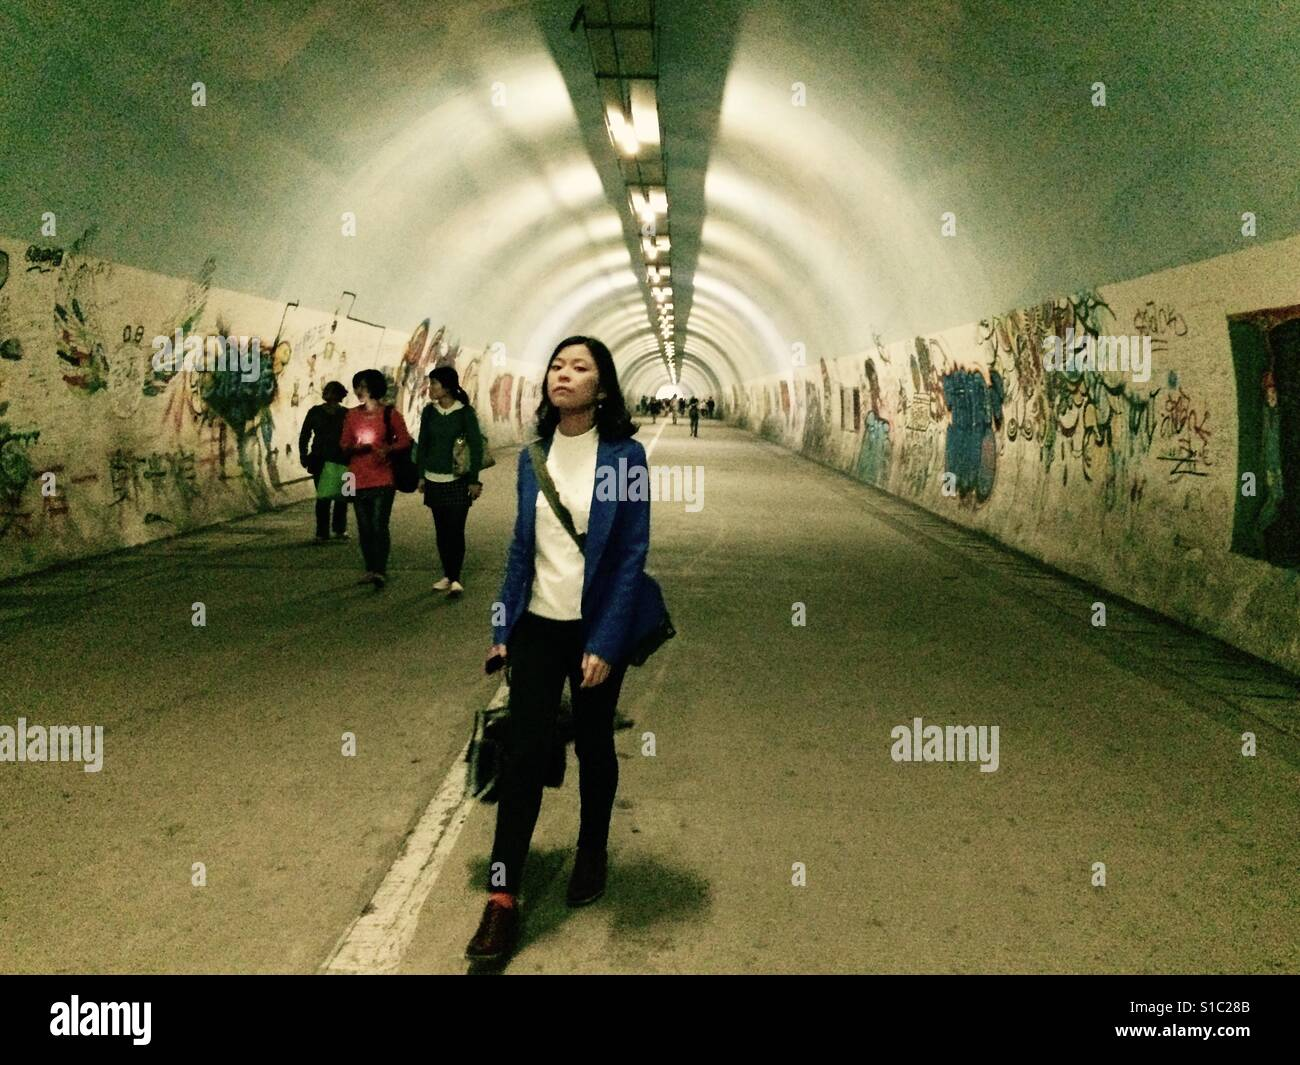 The tunnel, Amoy - Stock Image